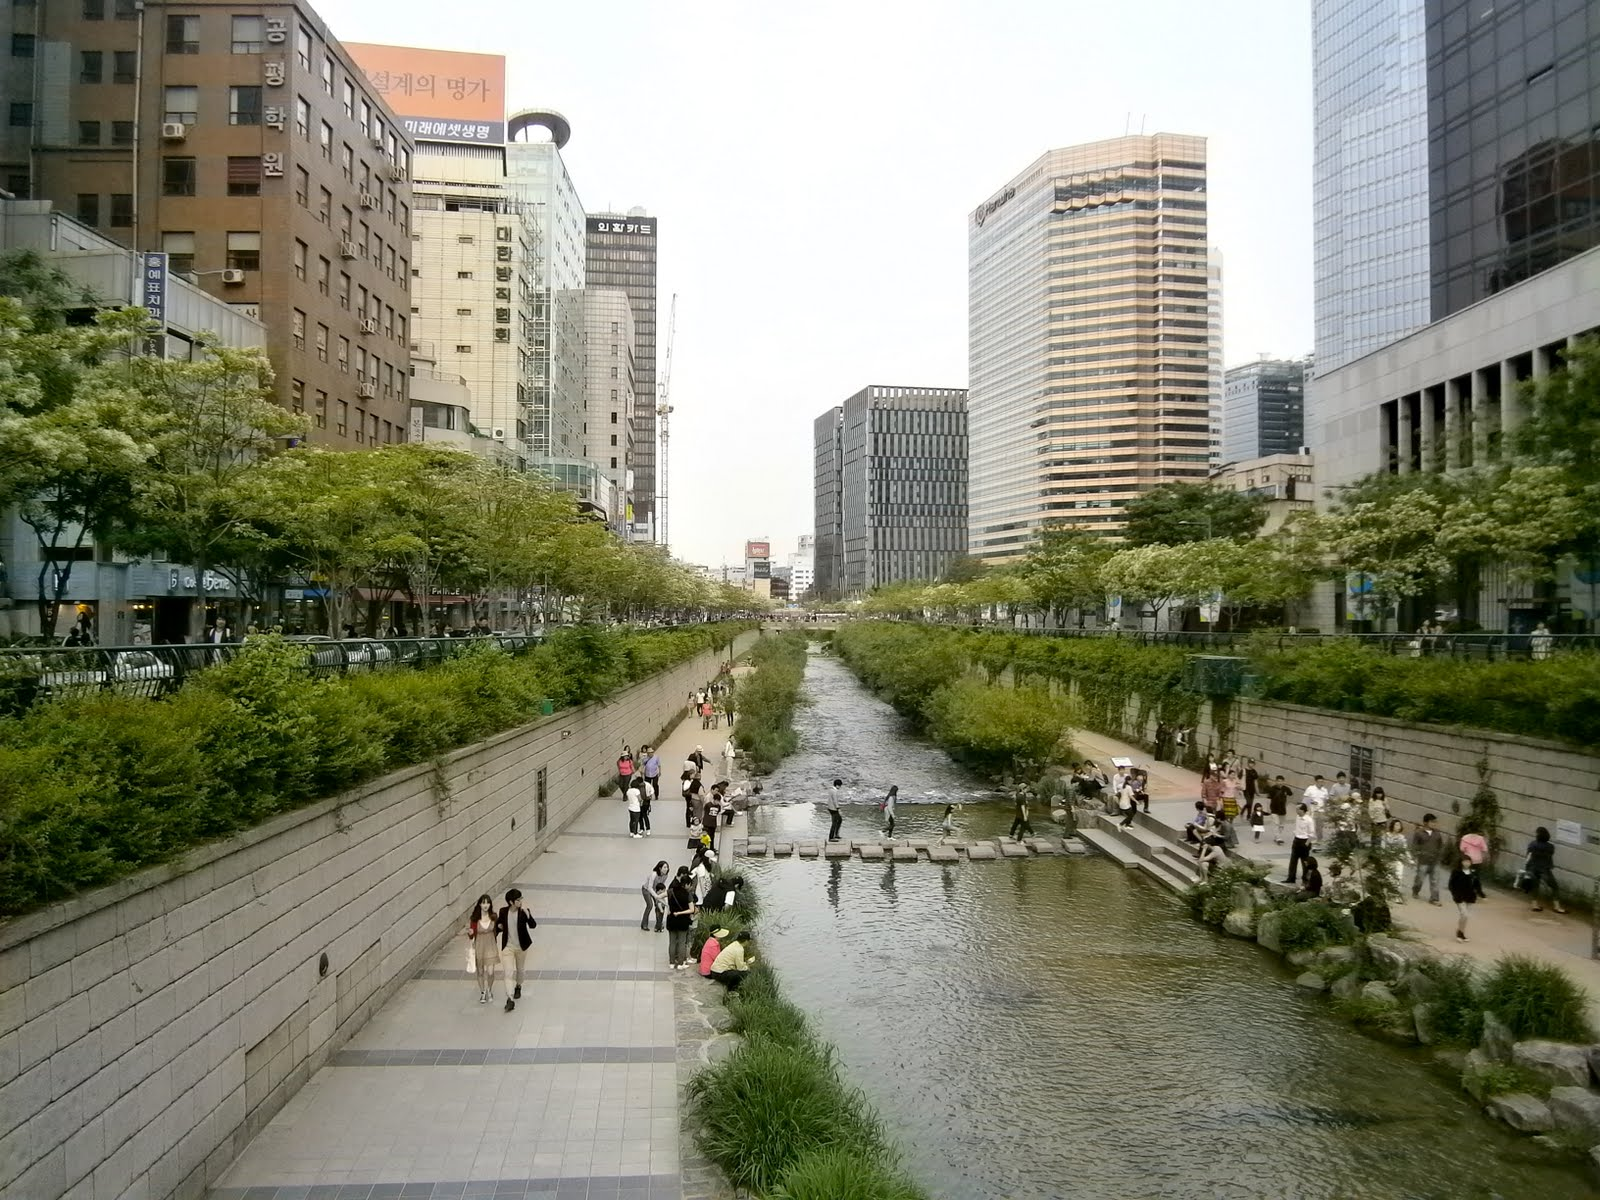 023 Cheonggyecheon